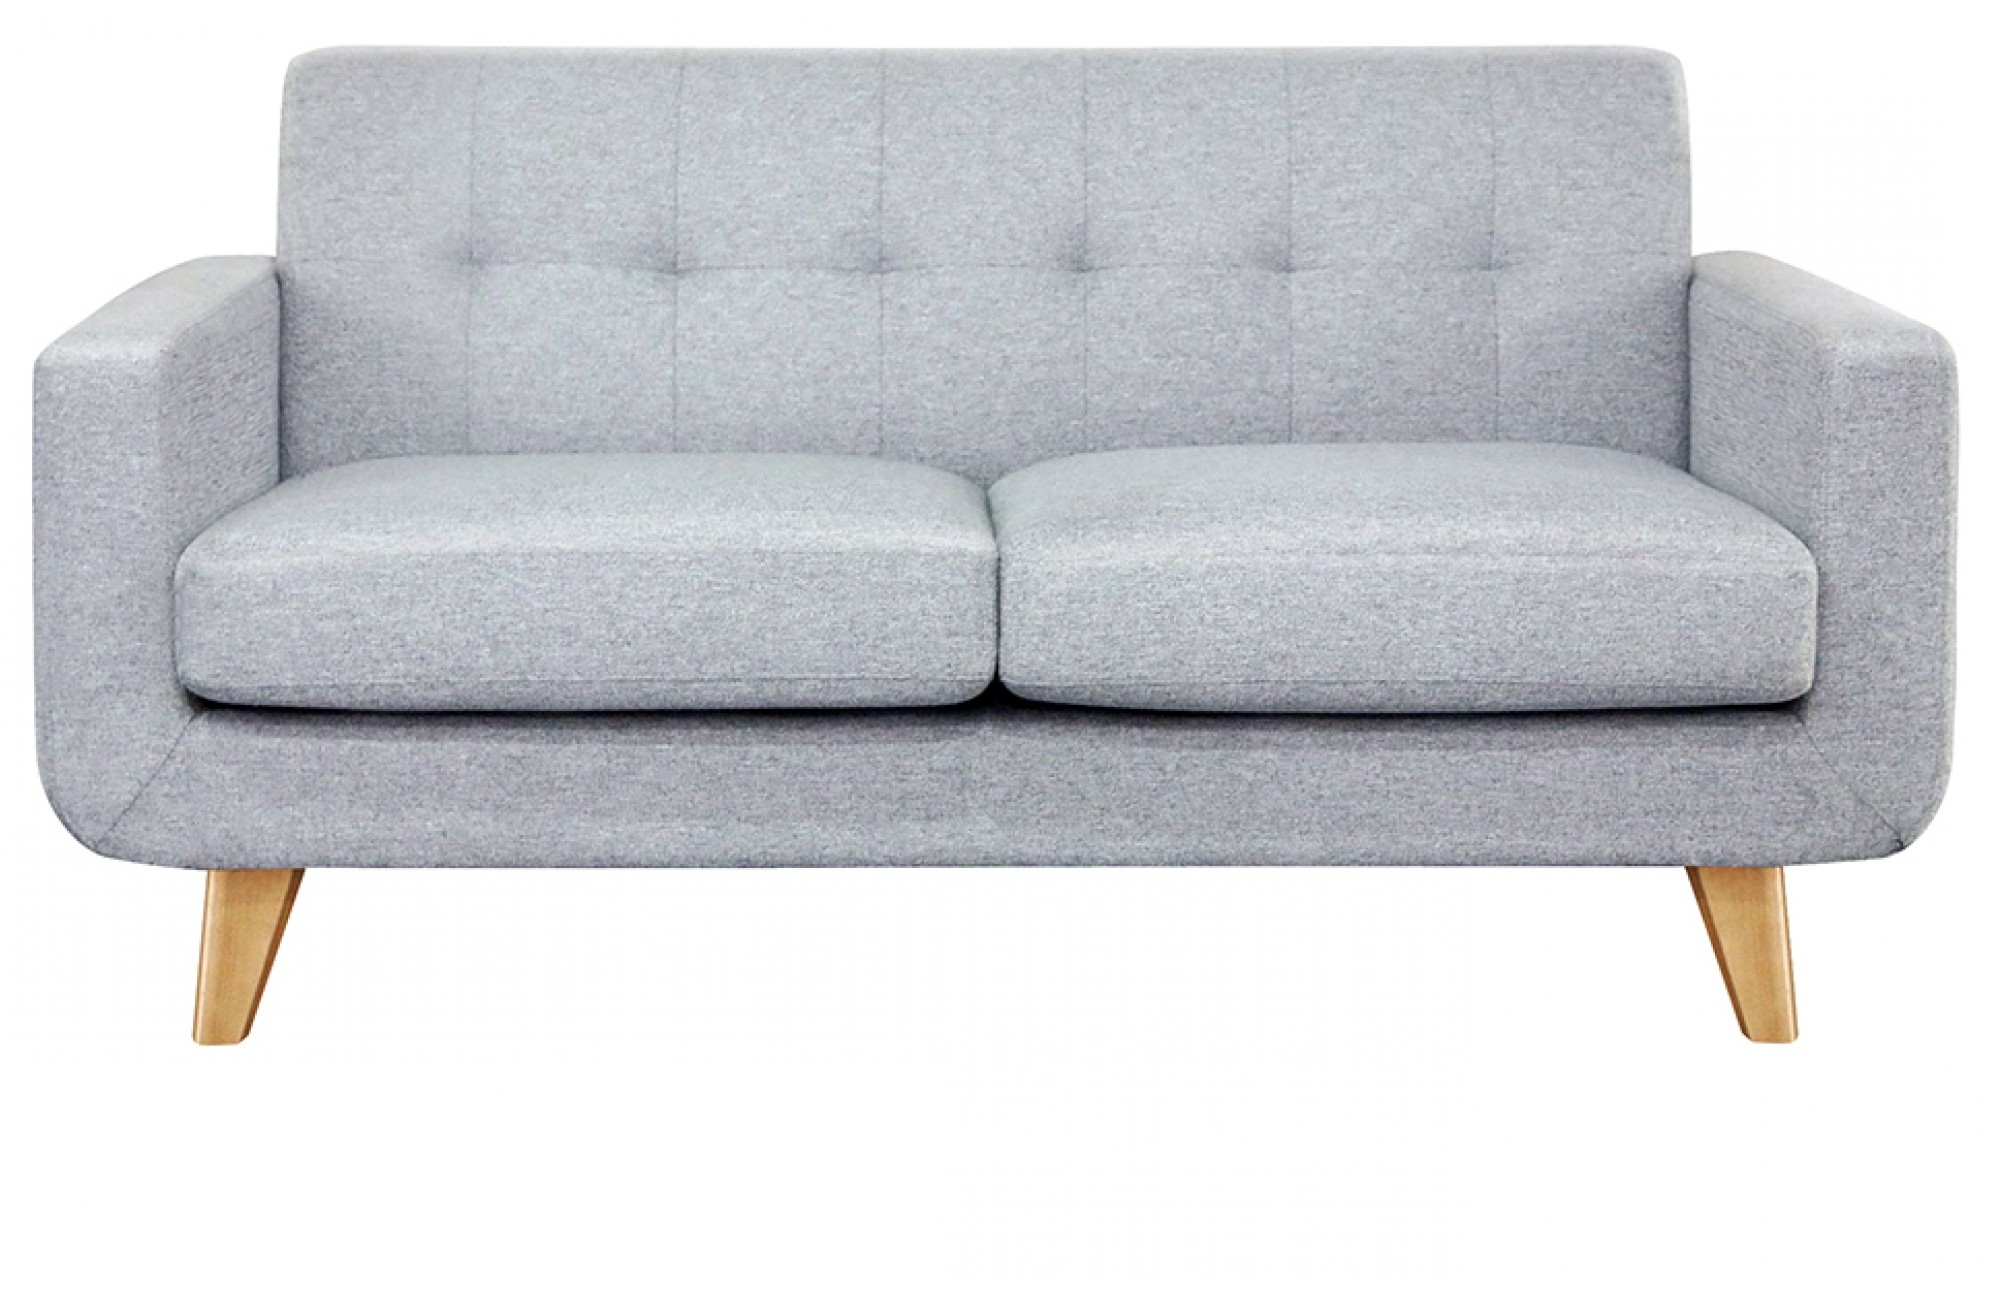 Recent Two Seater Sofas With Regard To Grey 2 Seater Sofa – Oak Legs  Lounge Furniture – Out & Out Original (View 2 of 15)